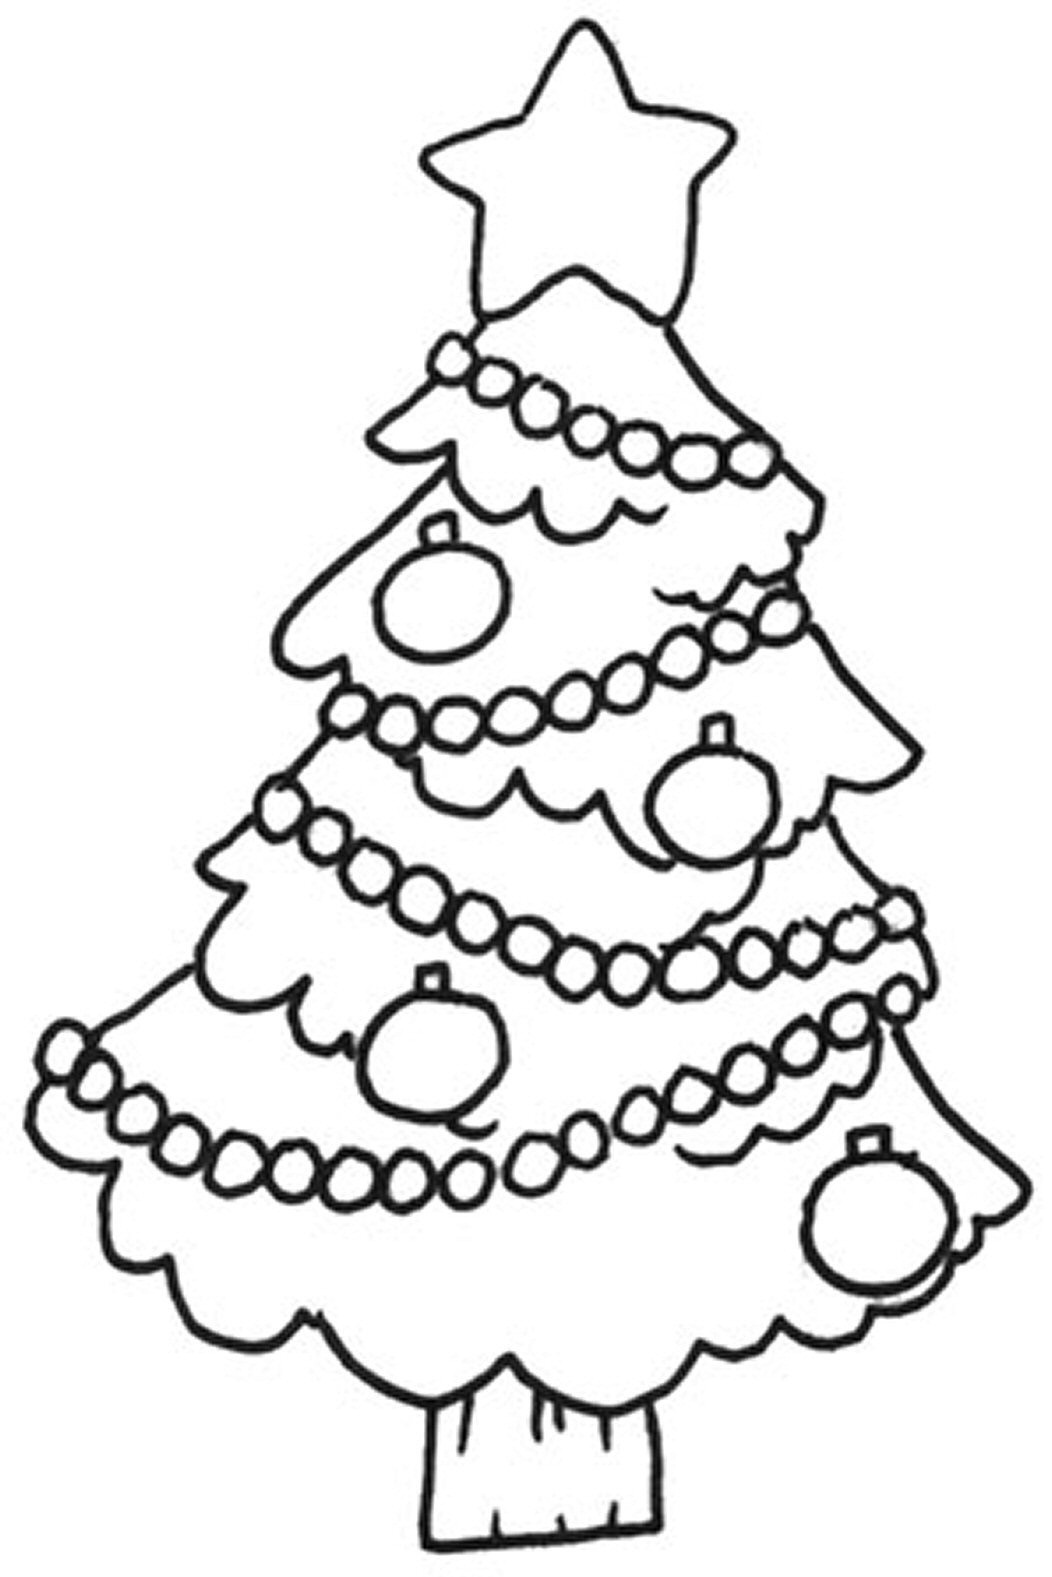 xmas tree colouring pages christmas tree coloring pages for childrens printable for free pages xmas colouring tree